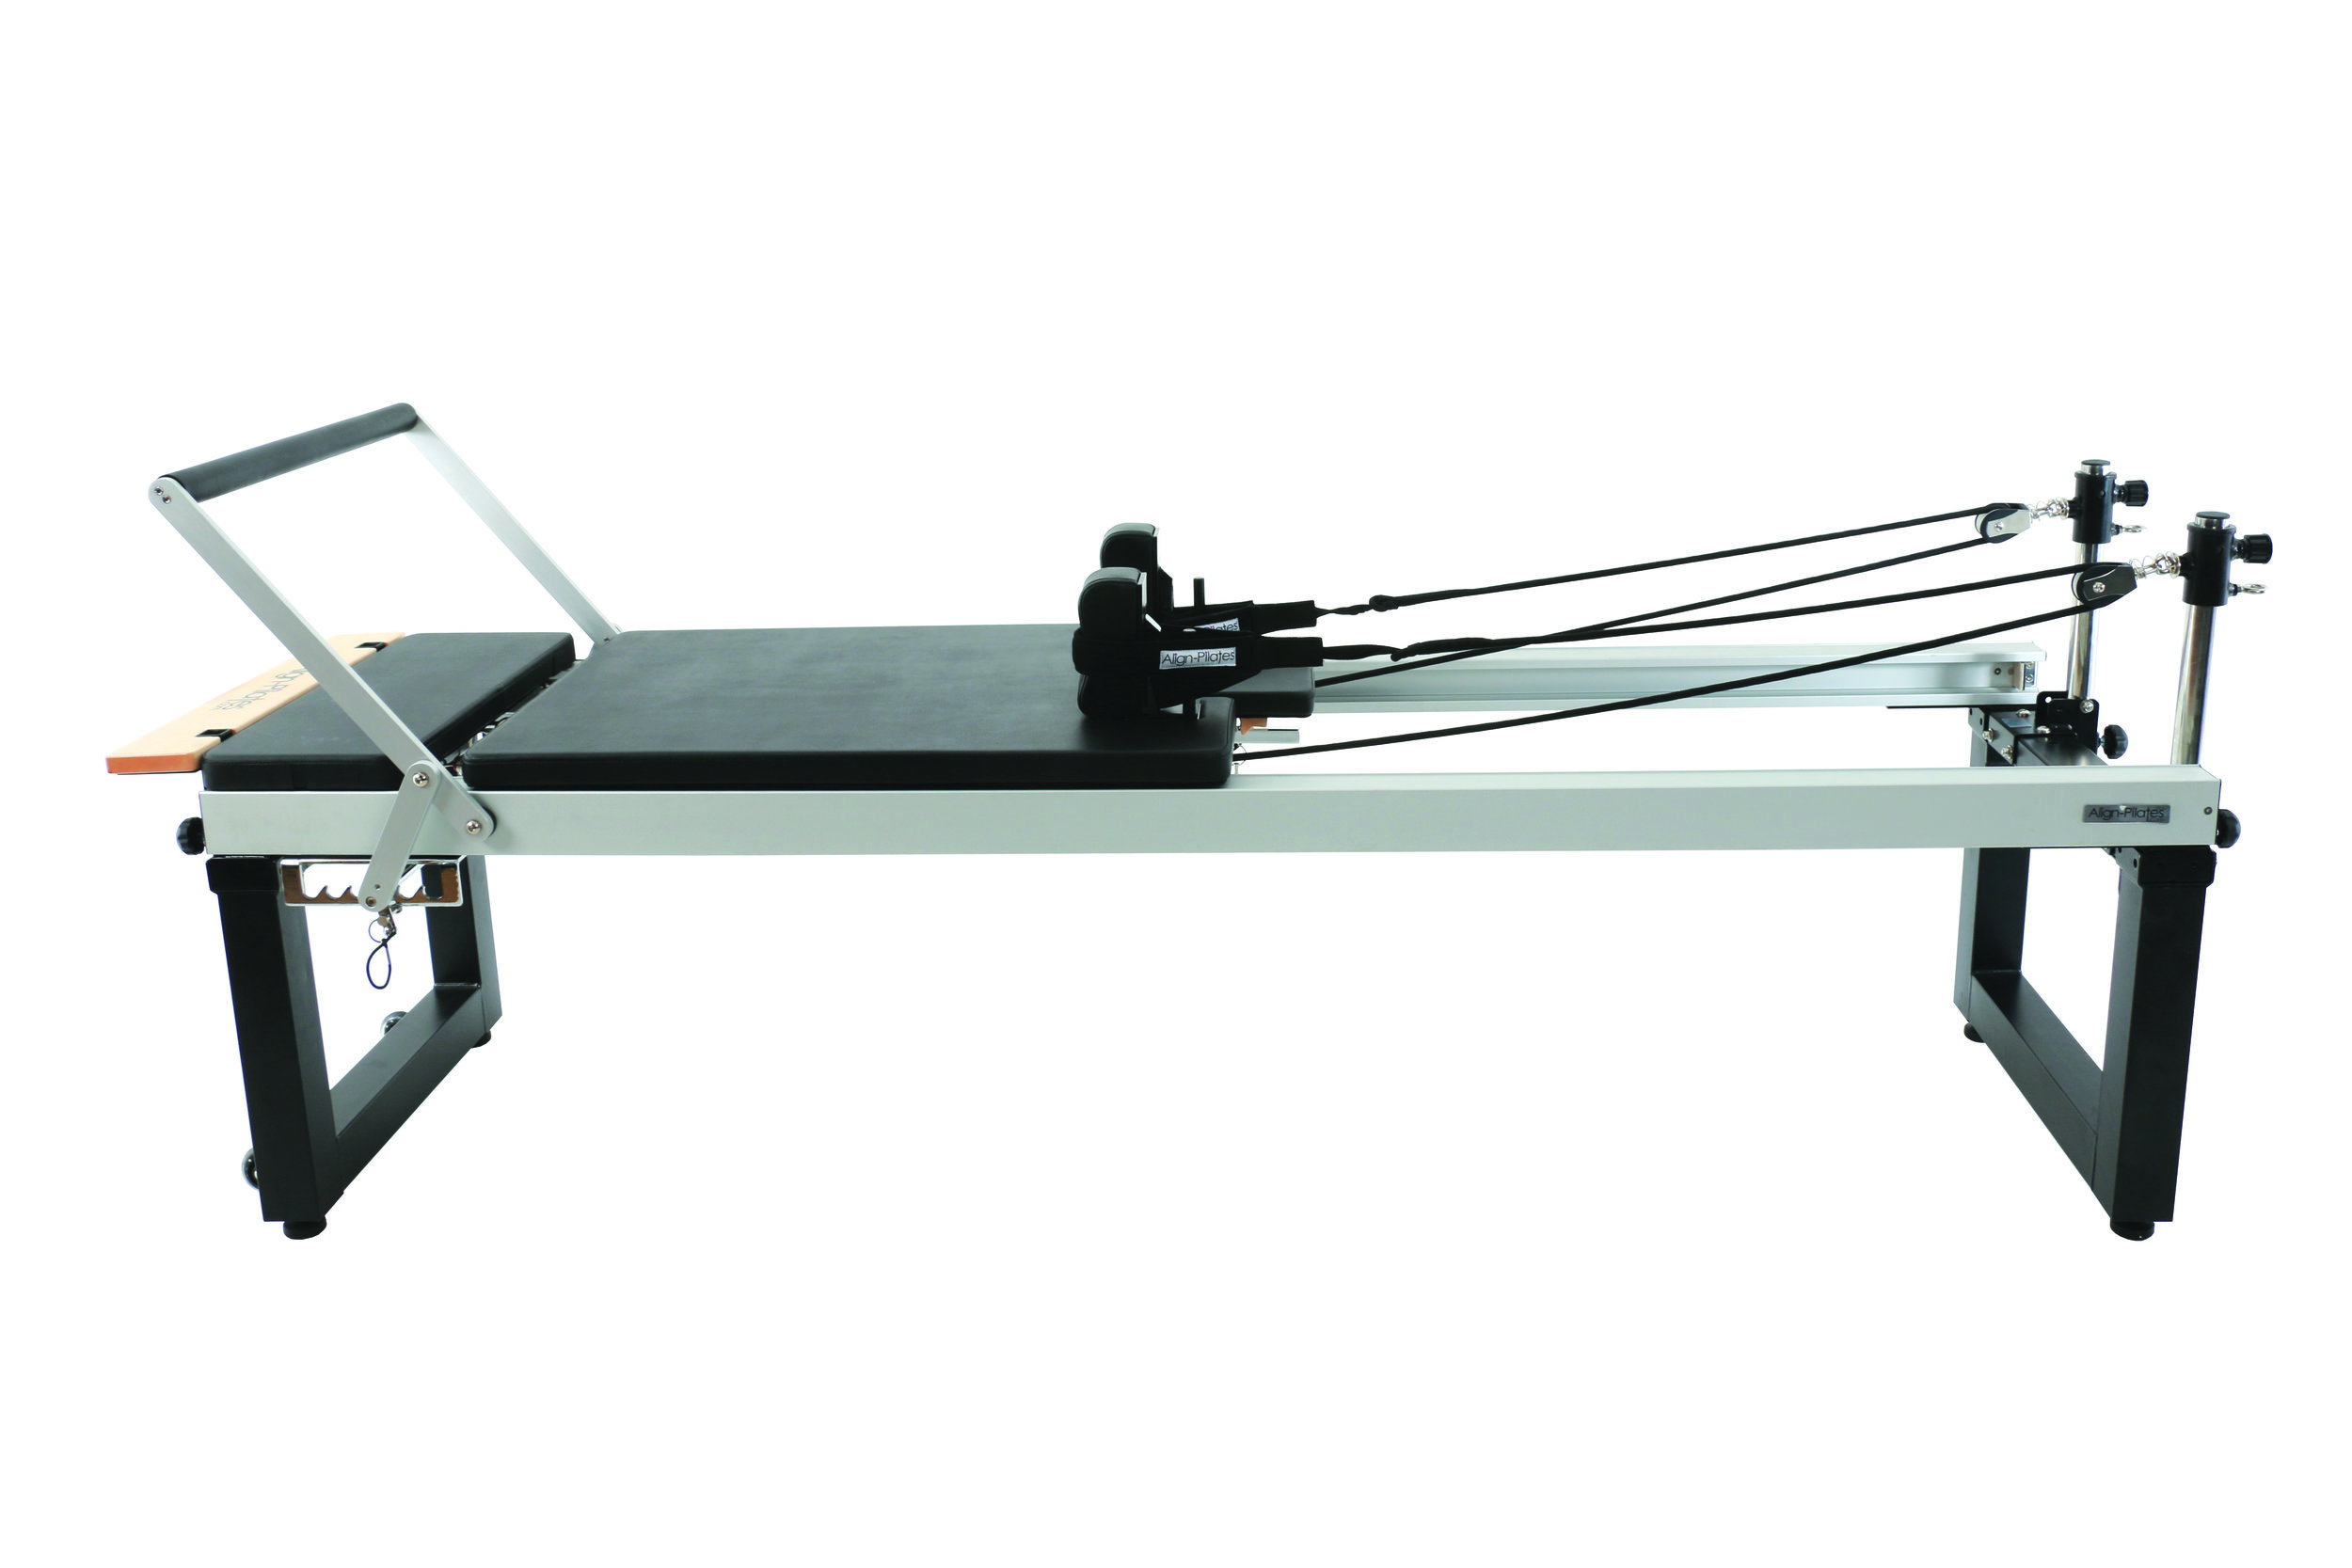 Align A2R2 studio pilates reformer with rehab legs 64cm carriage height